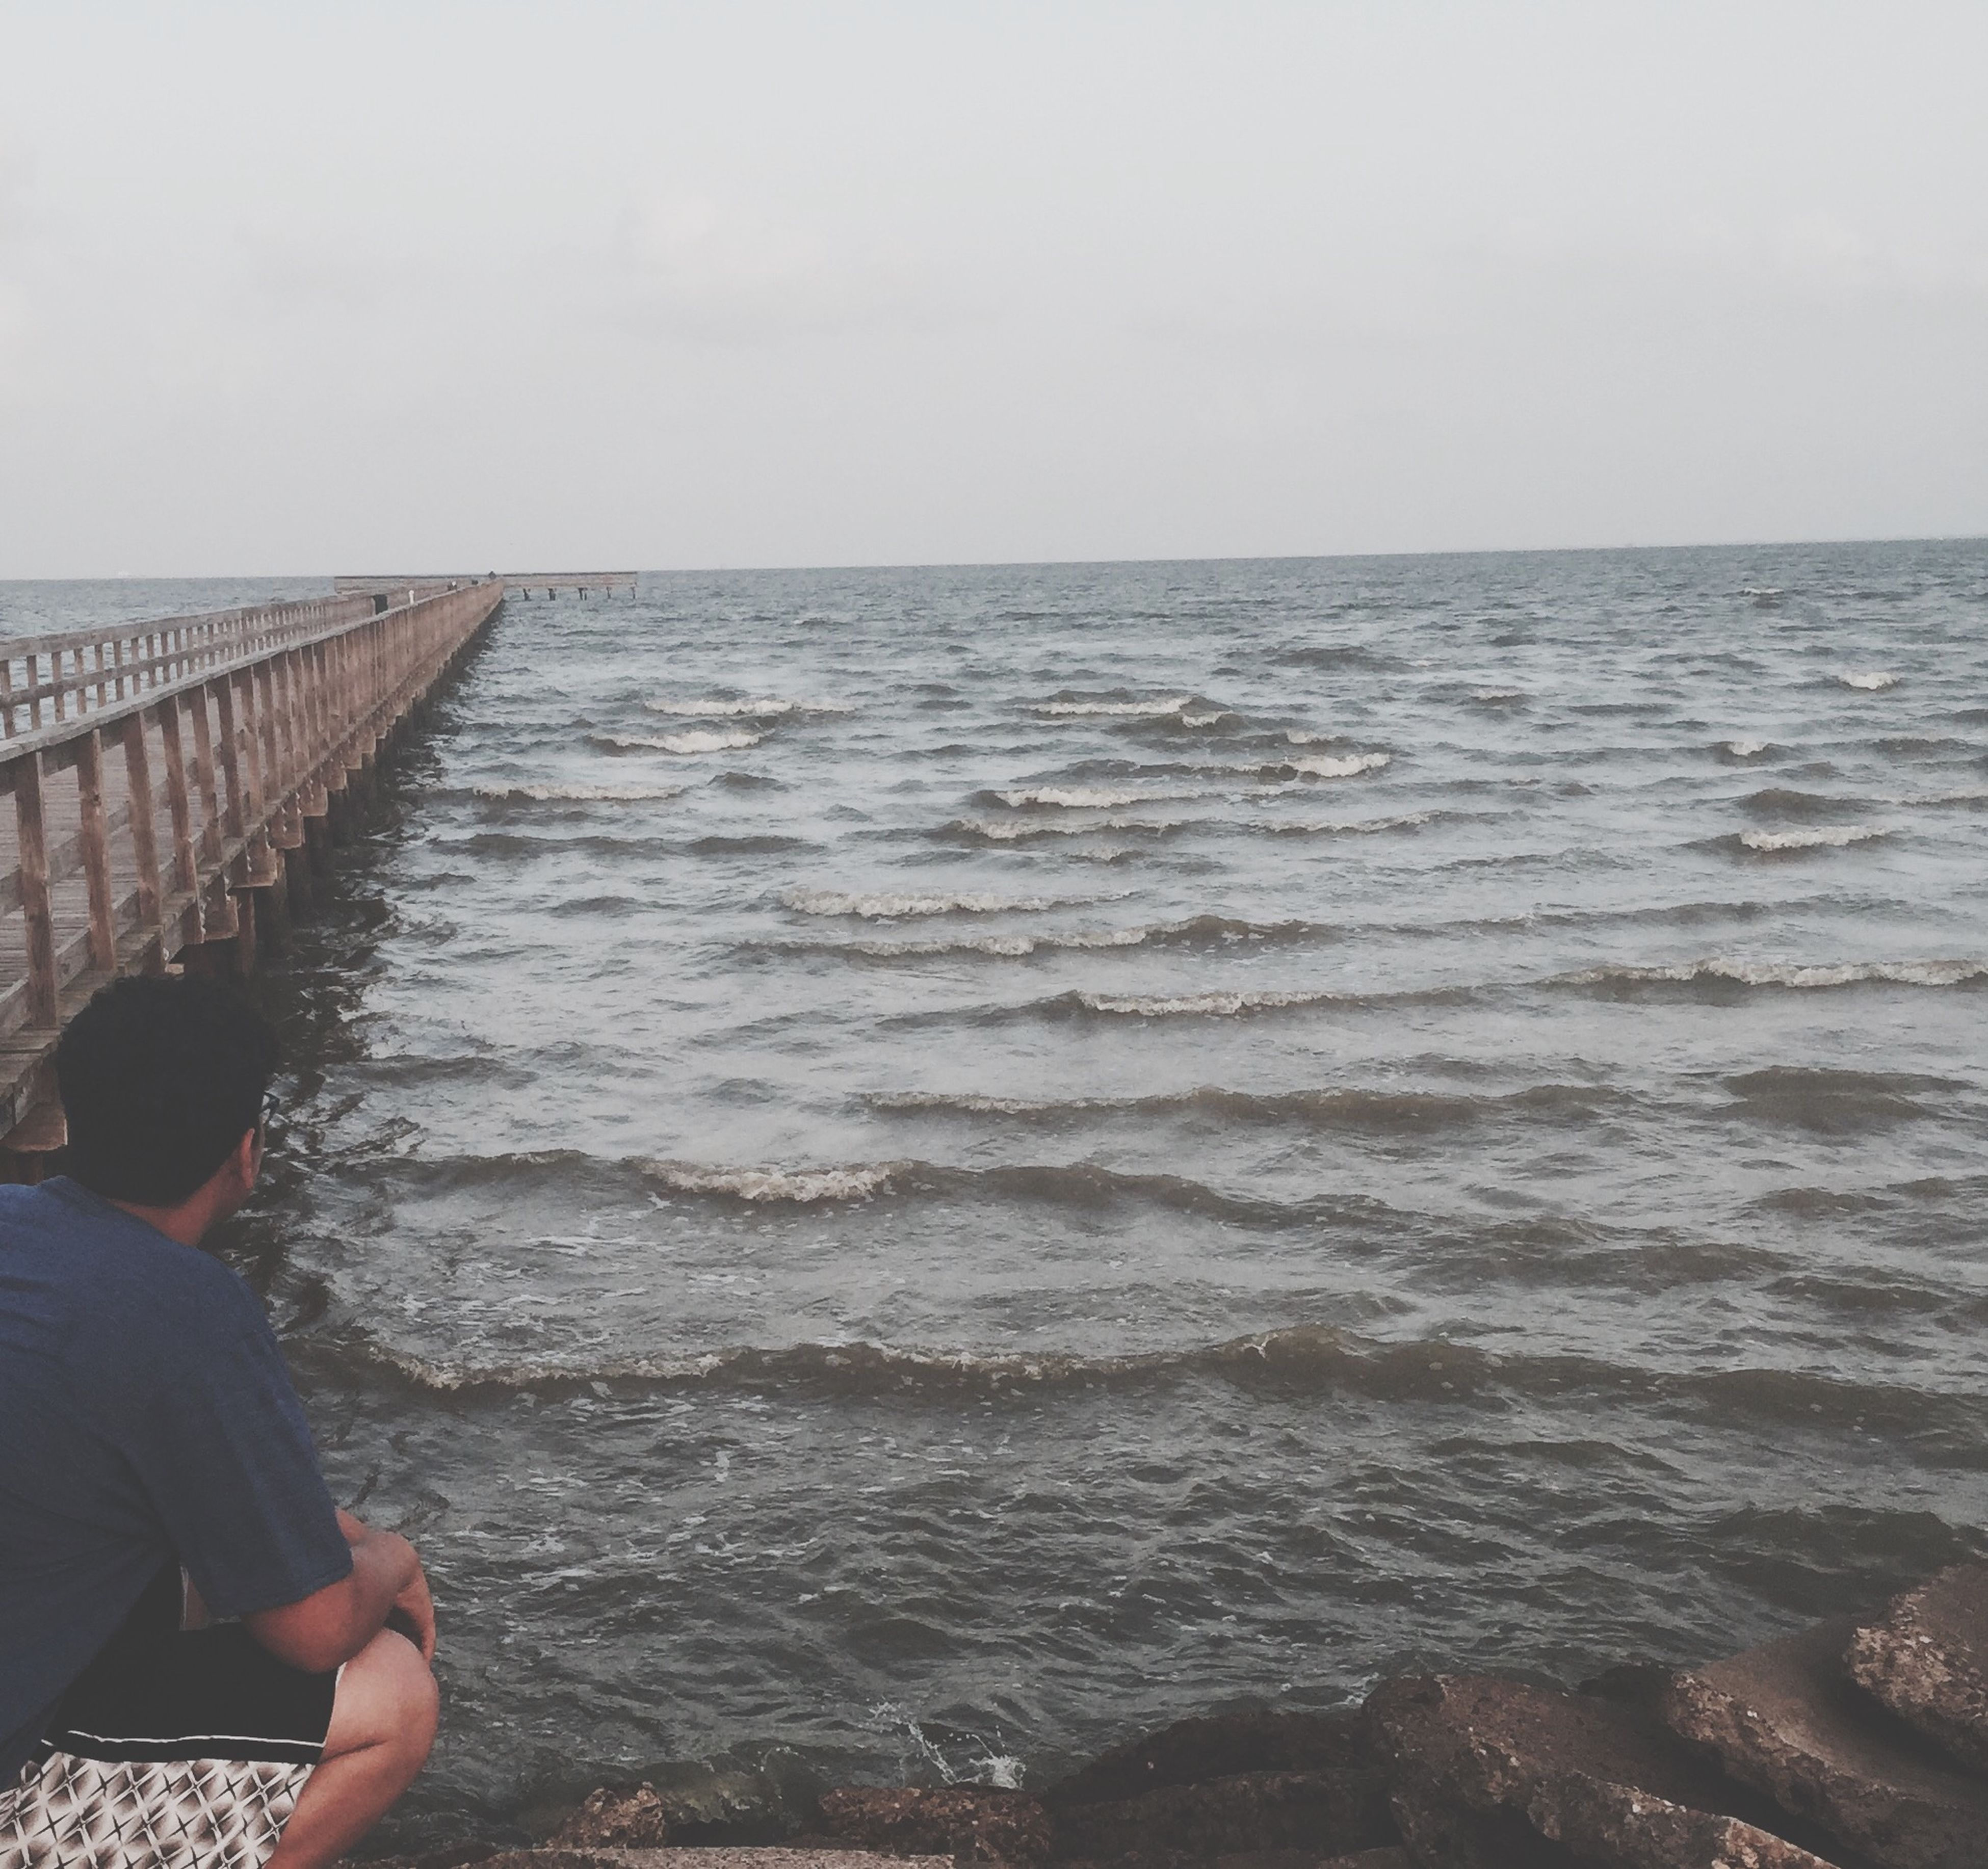 water, sea, lifestyles, leisure activity, men, horizon over water, standing, sky, rear view, person, railing, built structure, pier, nature, day, unrecognizable person, outdoors, scenics